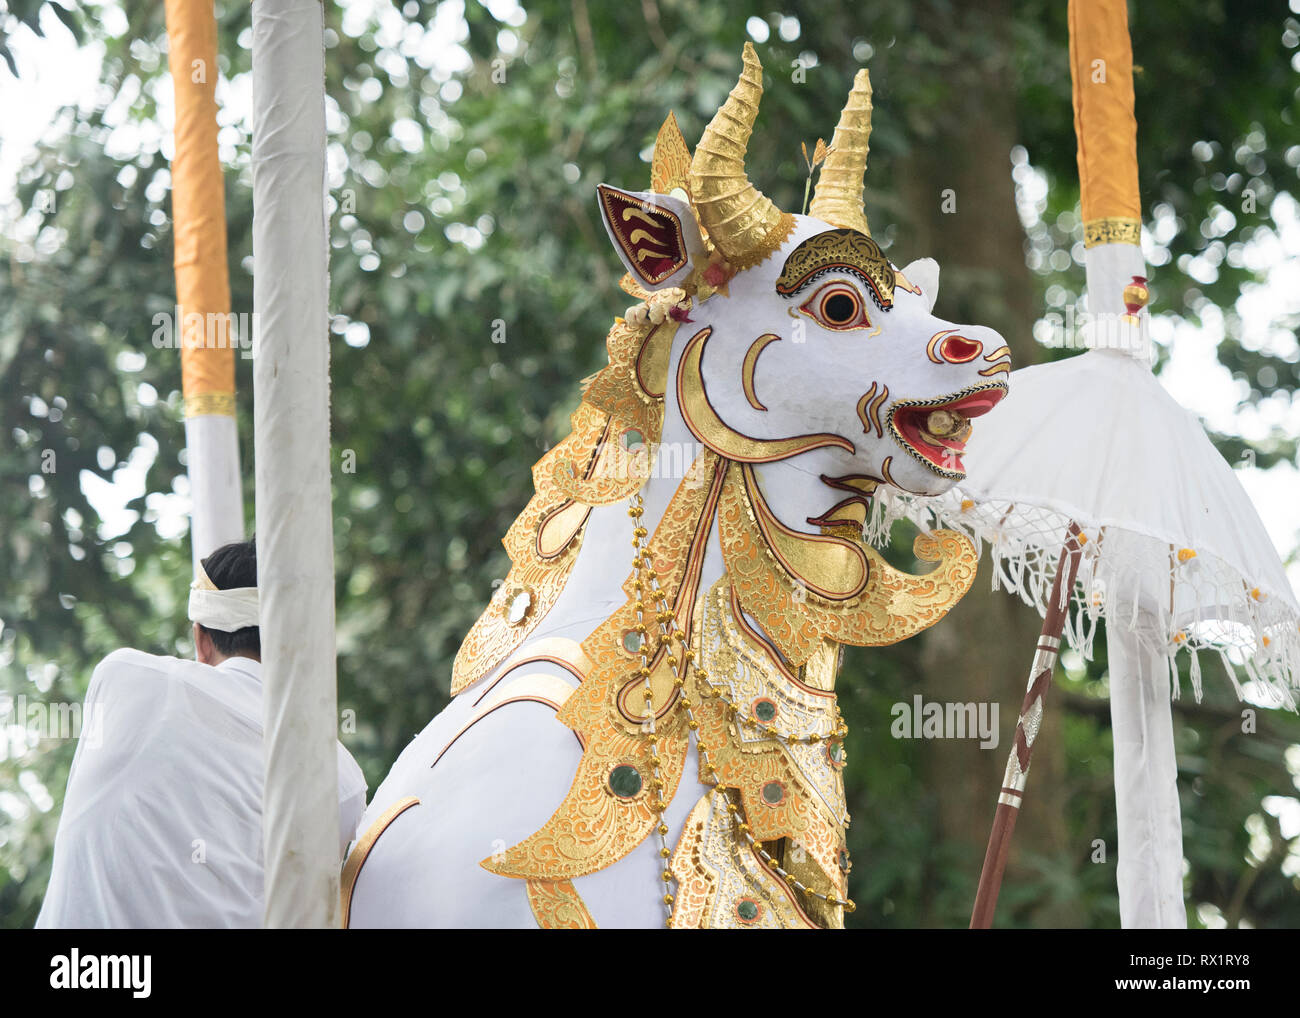 Rear view of man sitting by bull sculpture against trees during cremation ceremony - Stock Image